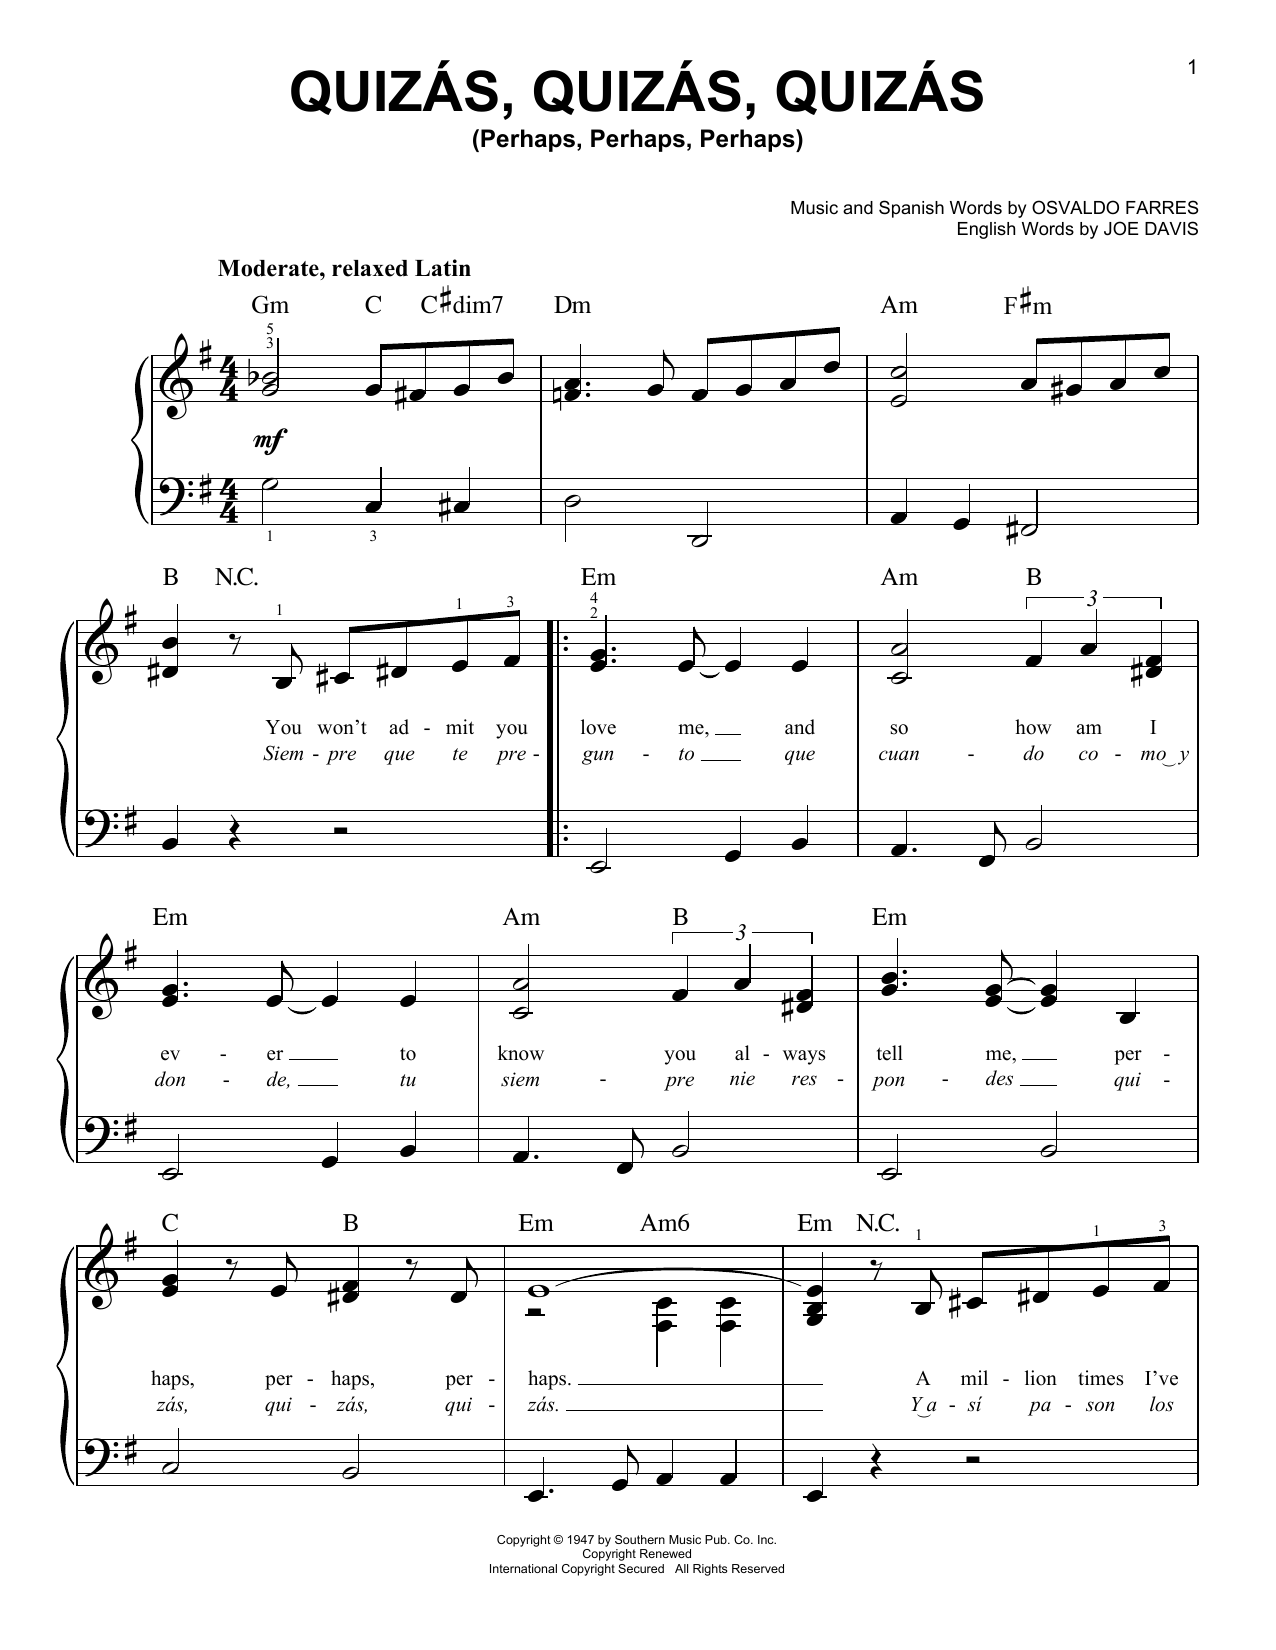 Joe Davis Quizas, Quizas, Quizas (Perhaps, Perhaps, Perhaps) sheet music notes and chords. Download Printable PDF.